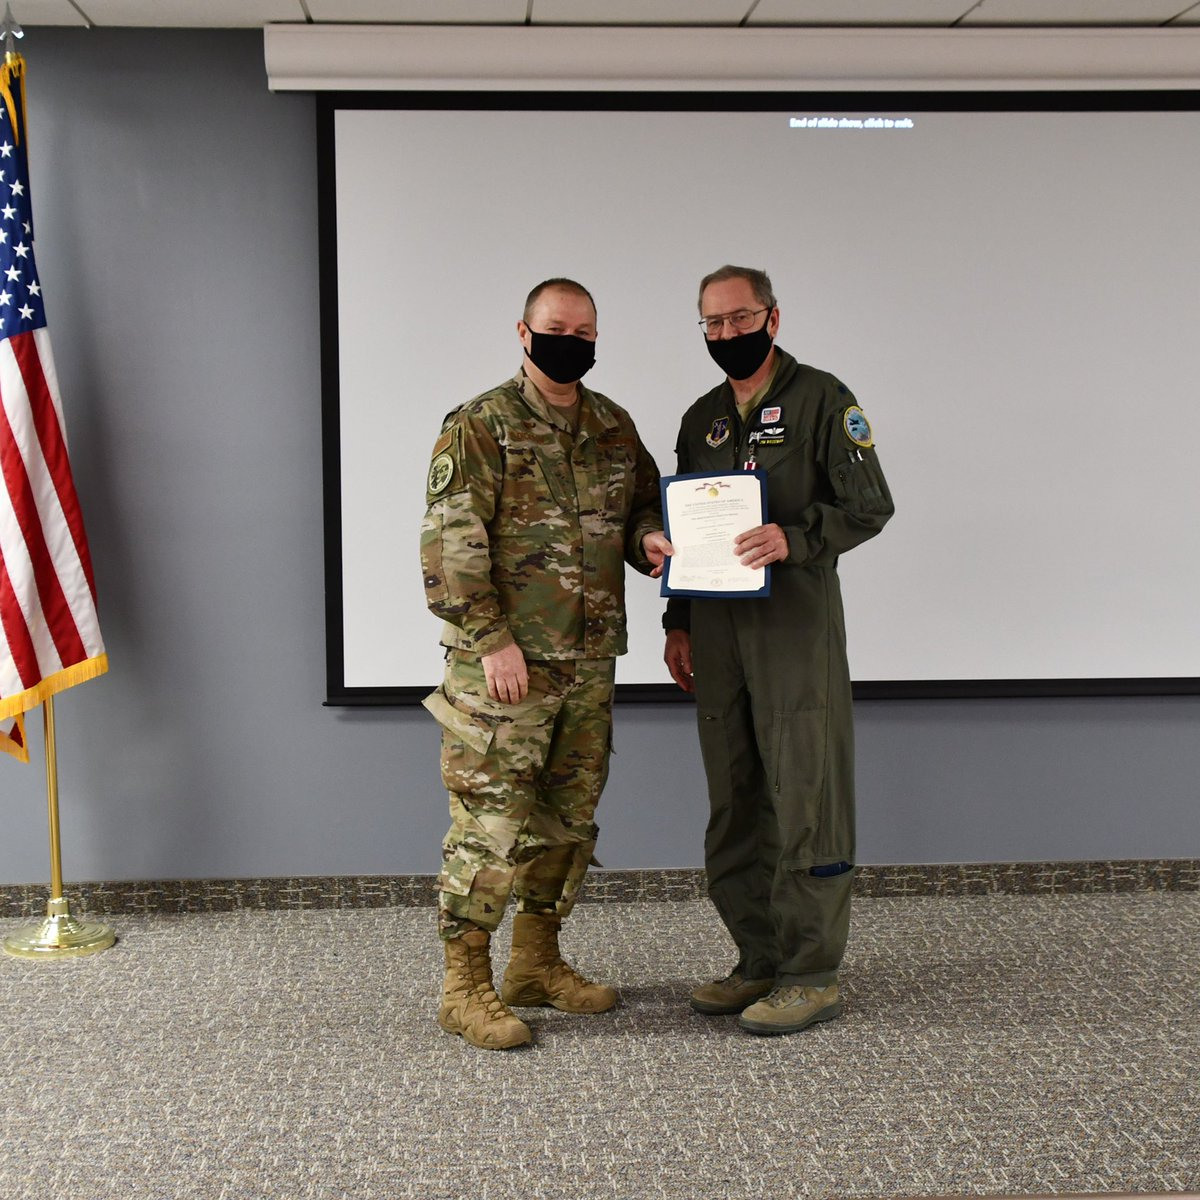 Montana State Air Surgeon Lt. Col. James Bozeman retired during February drill weekend after more than 20 years of service to the Montana Air National Guard. Thank you for your service Doc Bozeman!